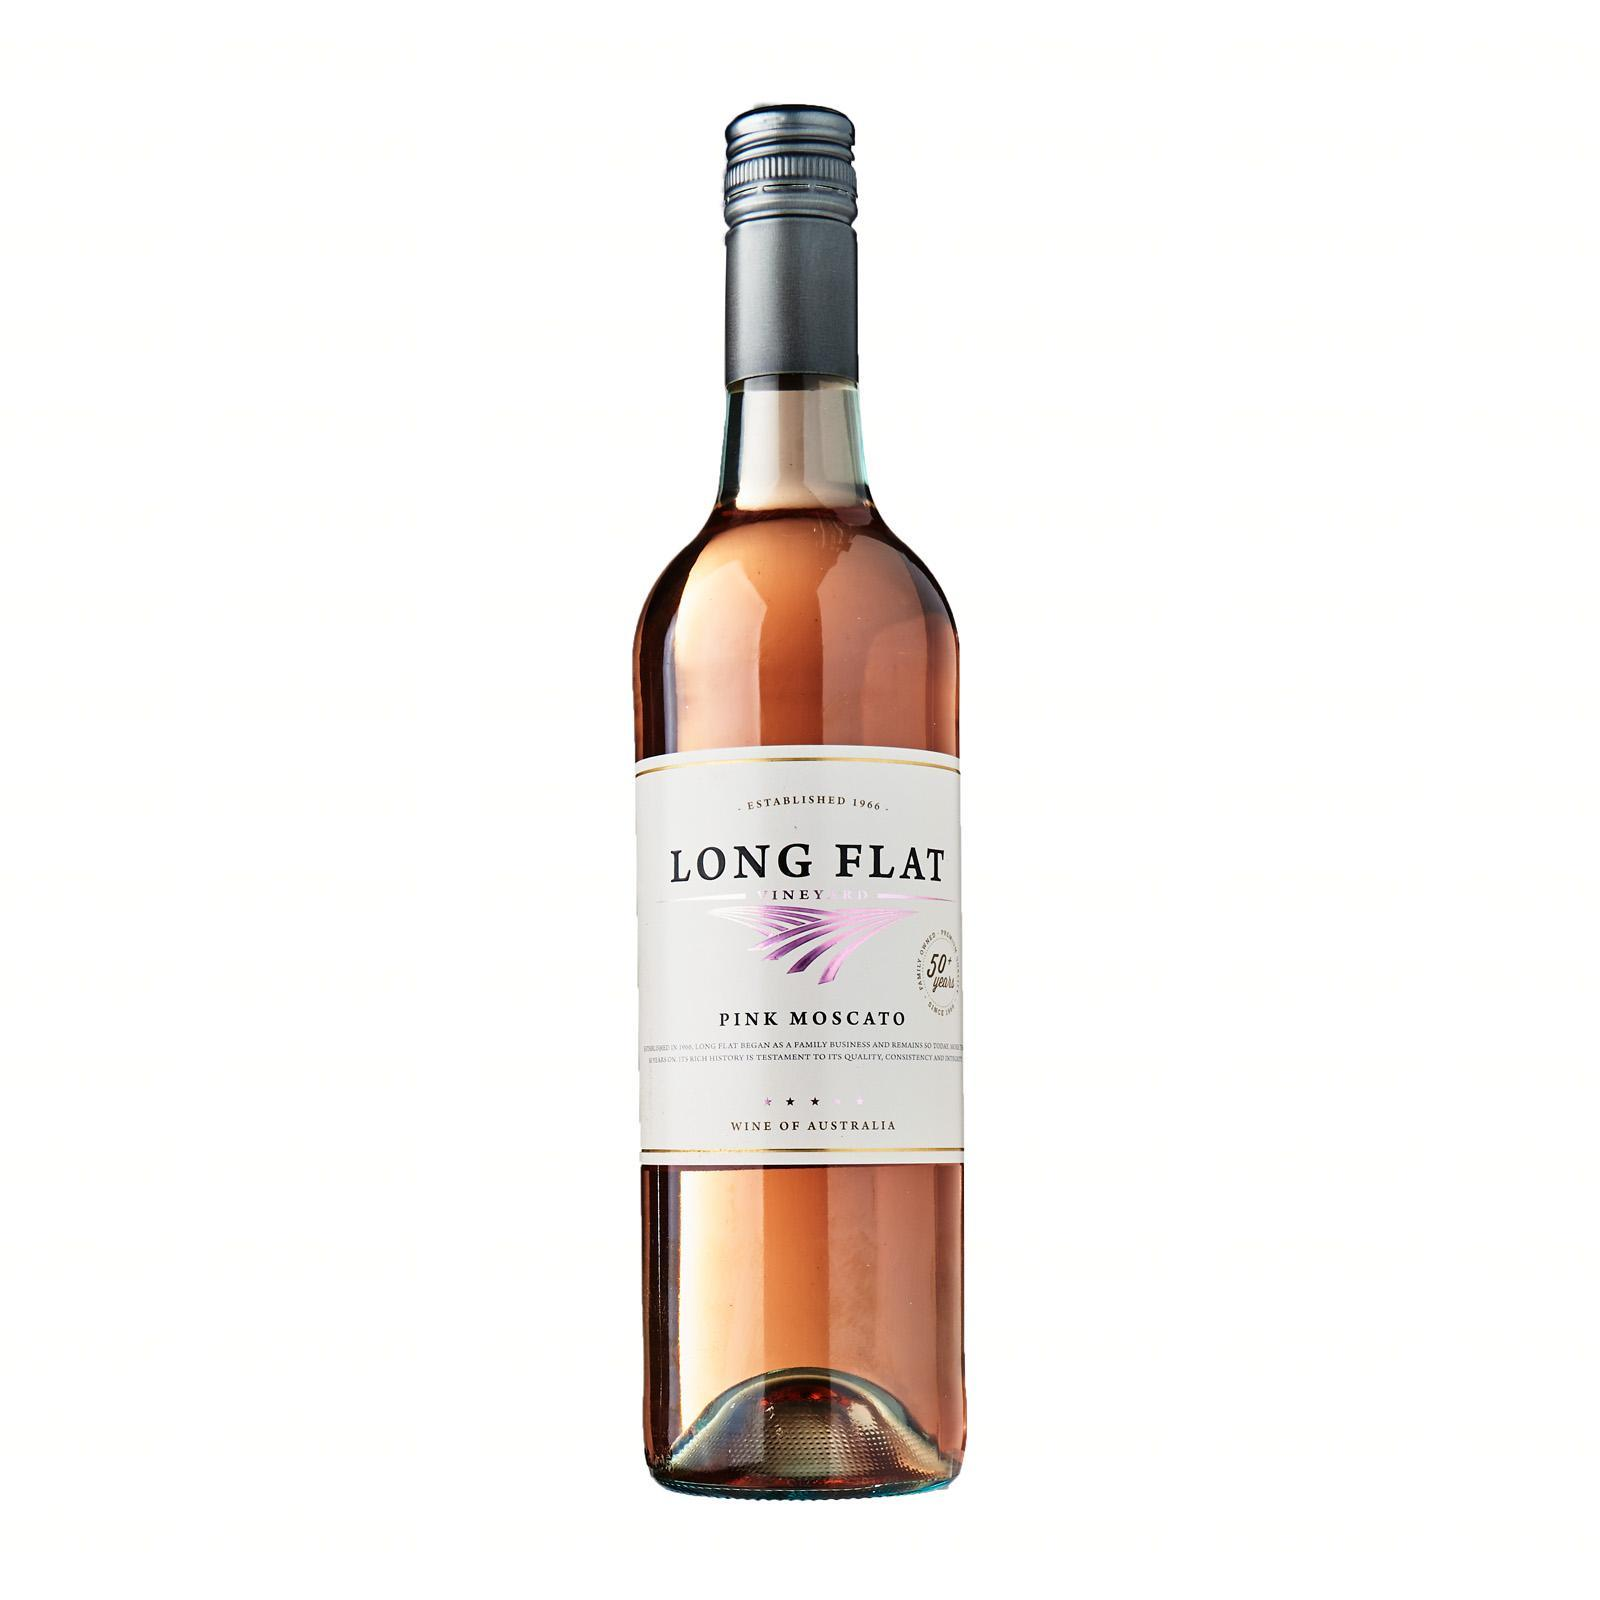 Long Flat Pink Moscato